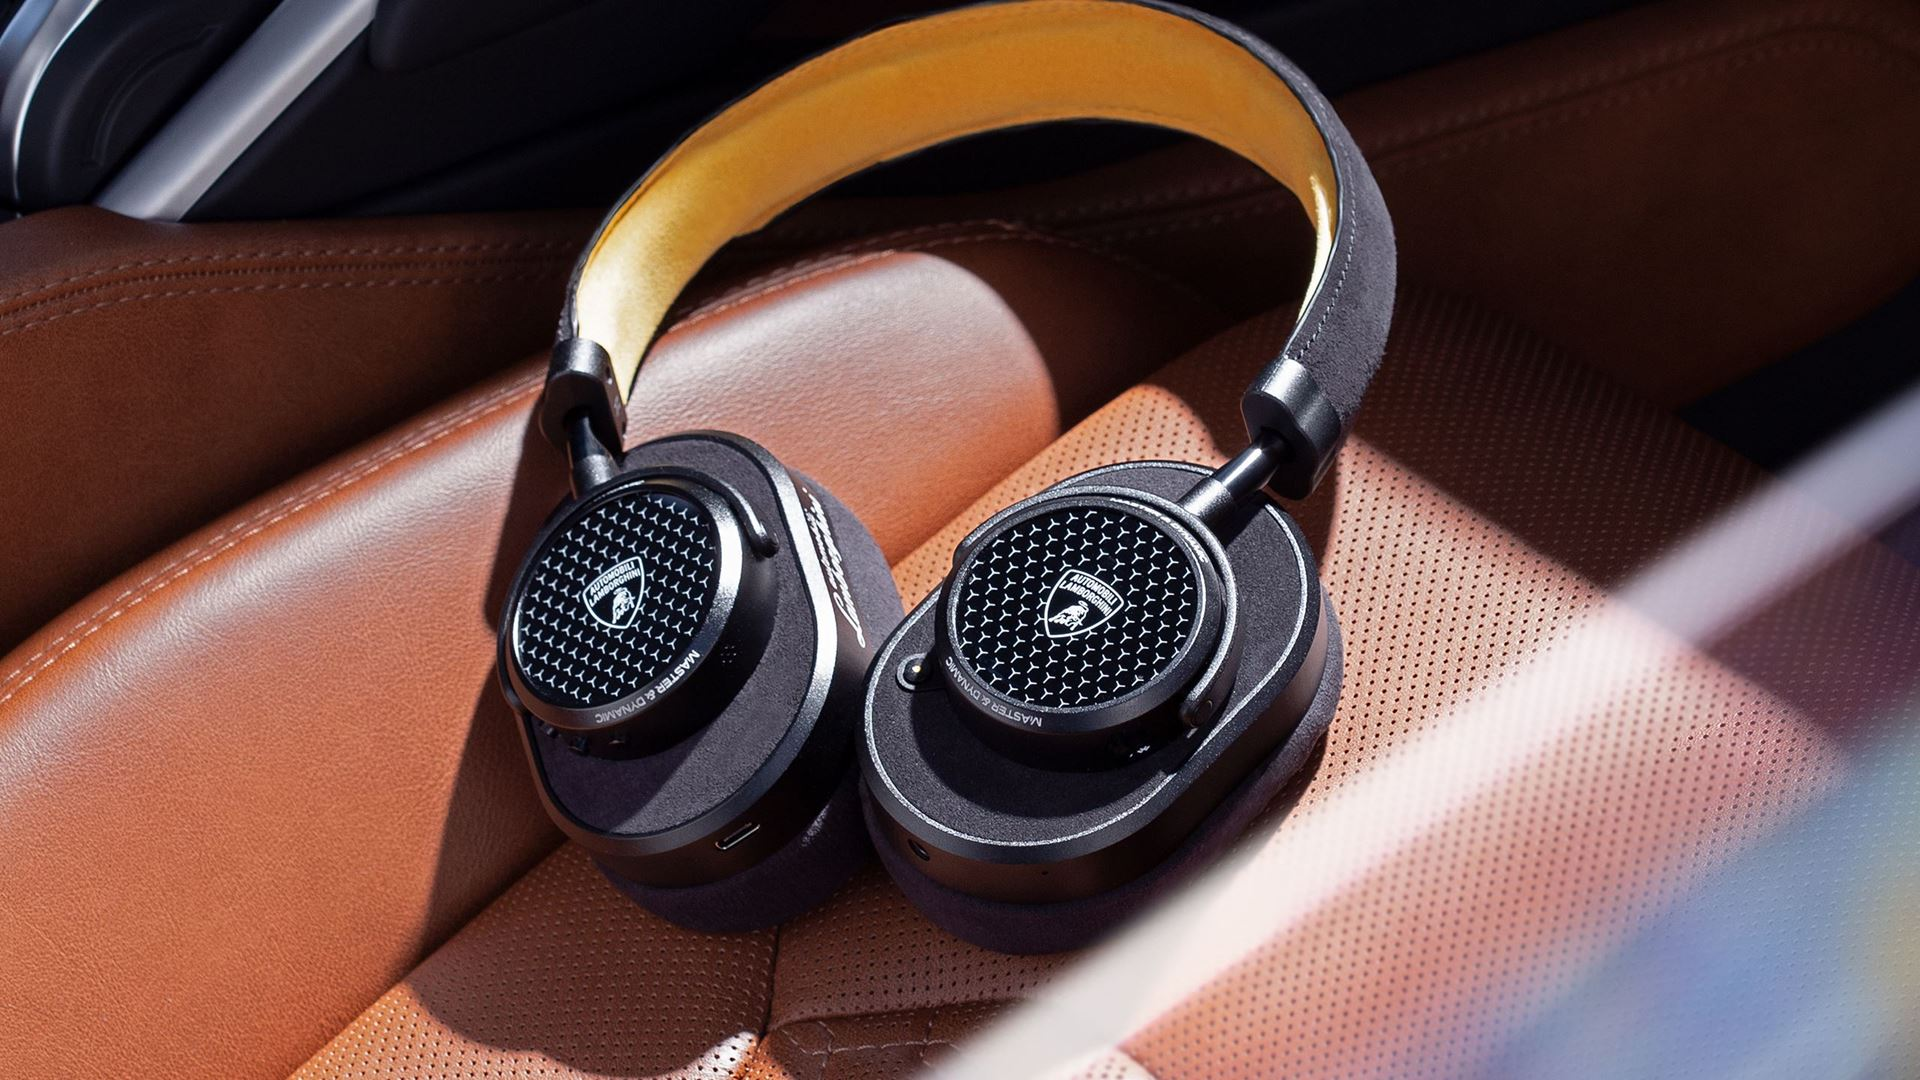 Automobili Lamborghini partners with Master & Dynamic on new headphones and earphones collection - Image 5